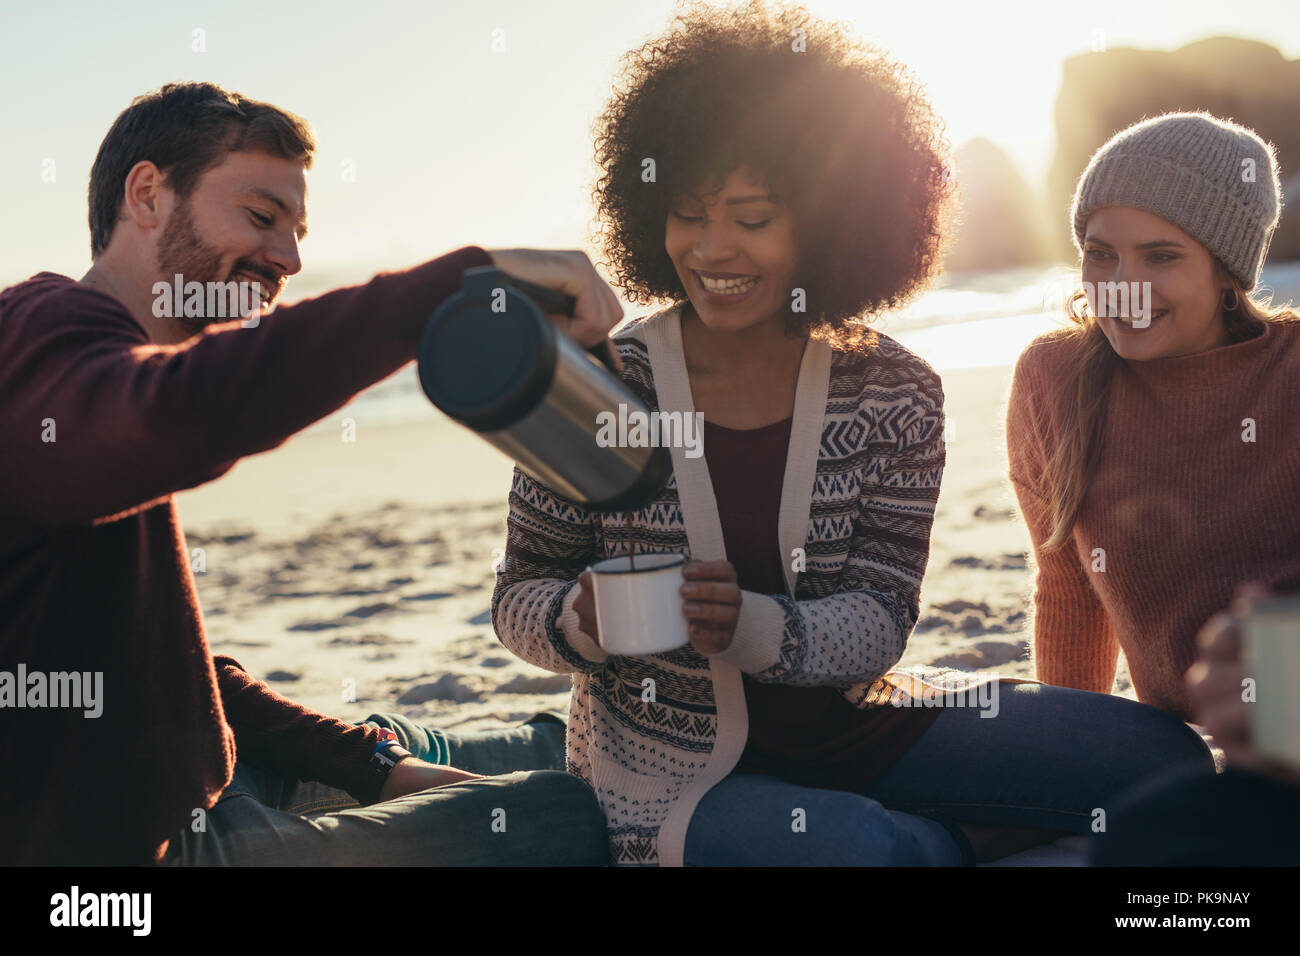 Man pouring coffee in woman's cup at beach. Group of young friends having coffee at beach. - Stock Image